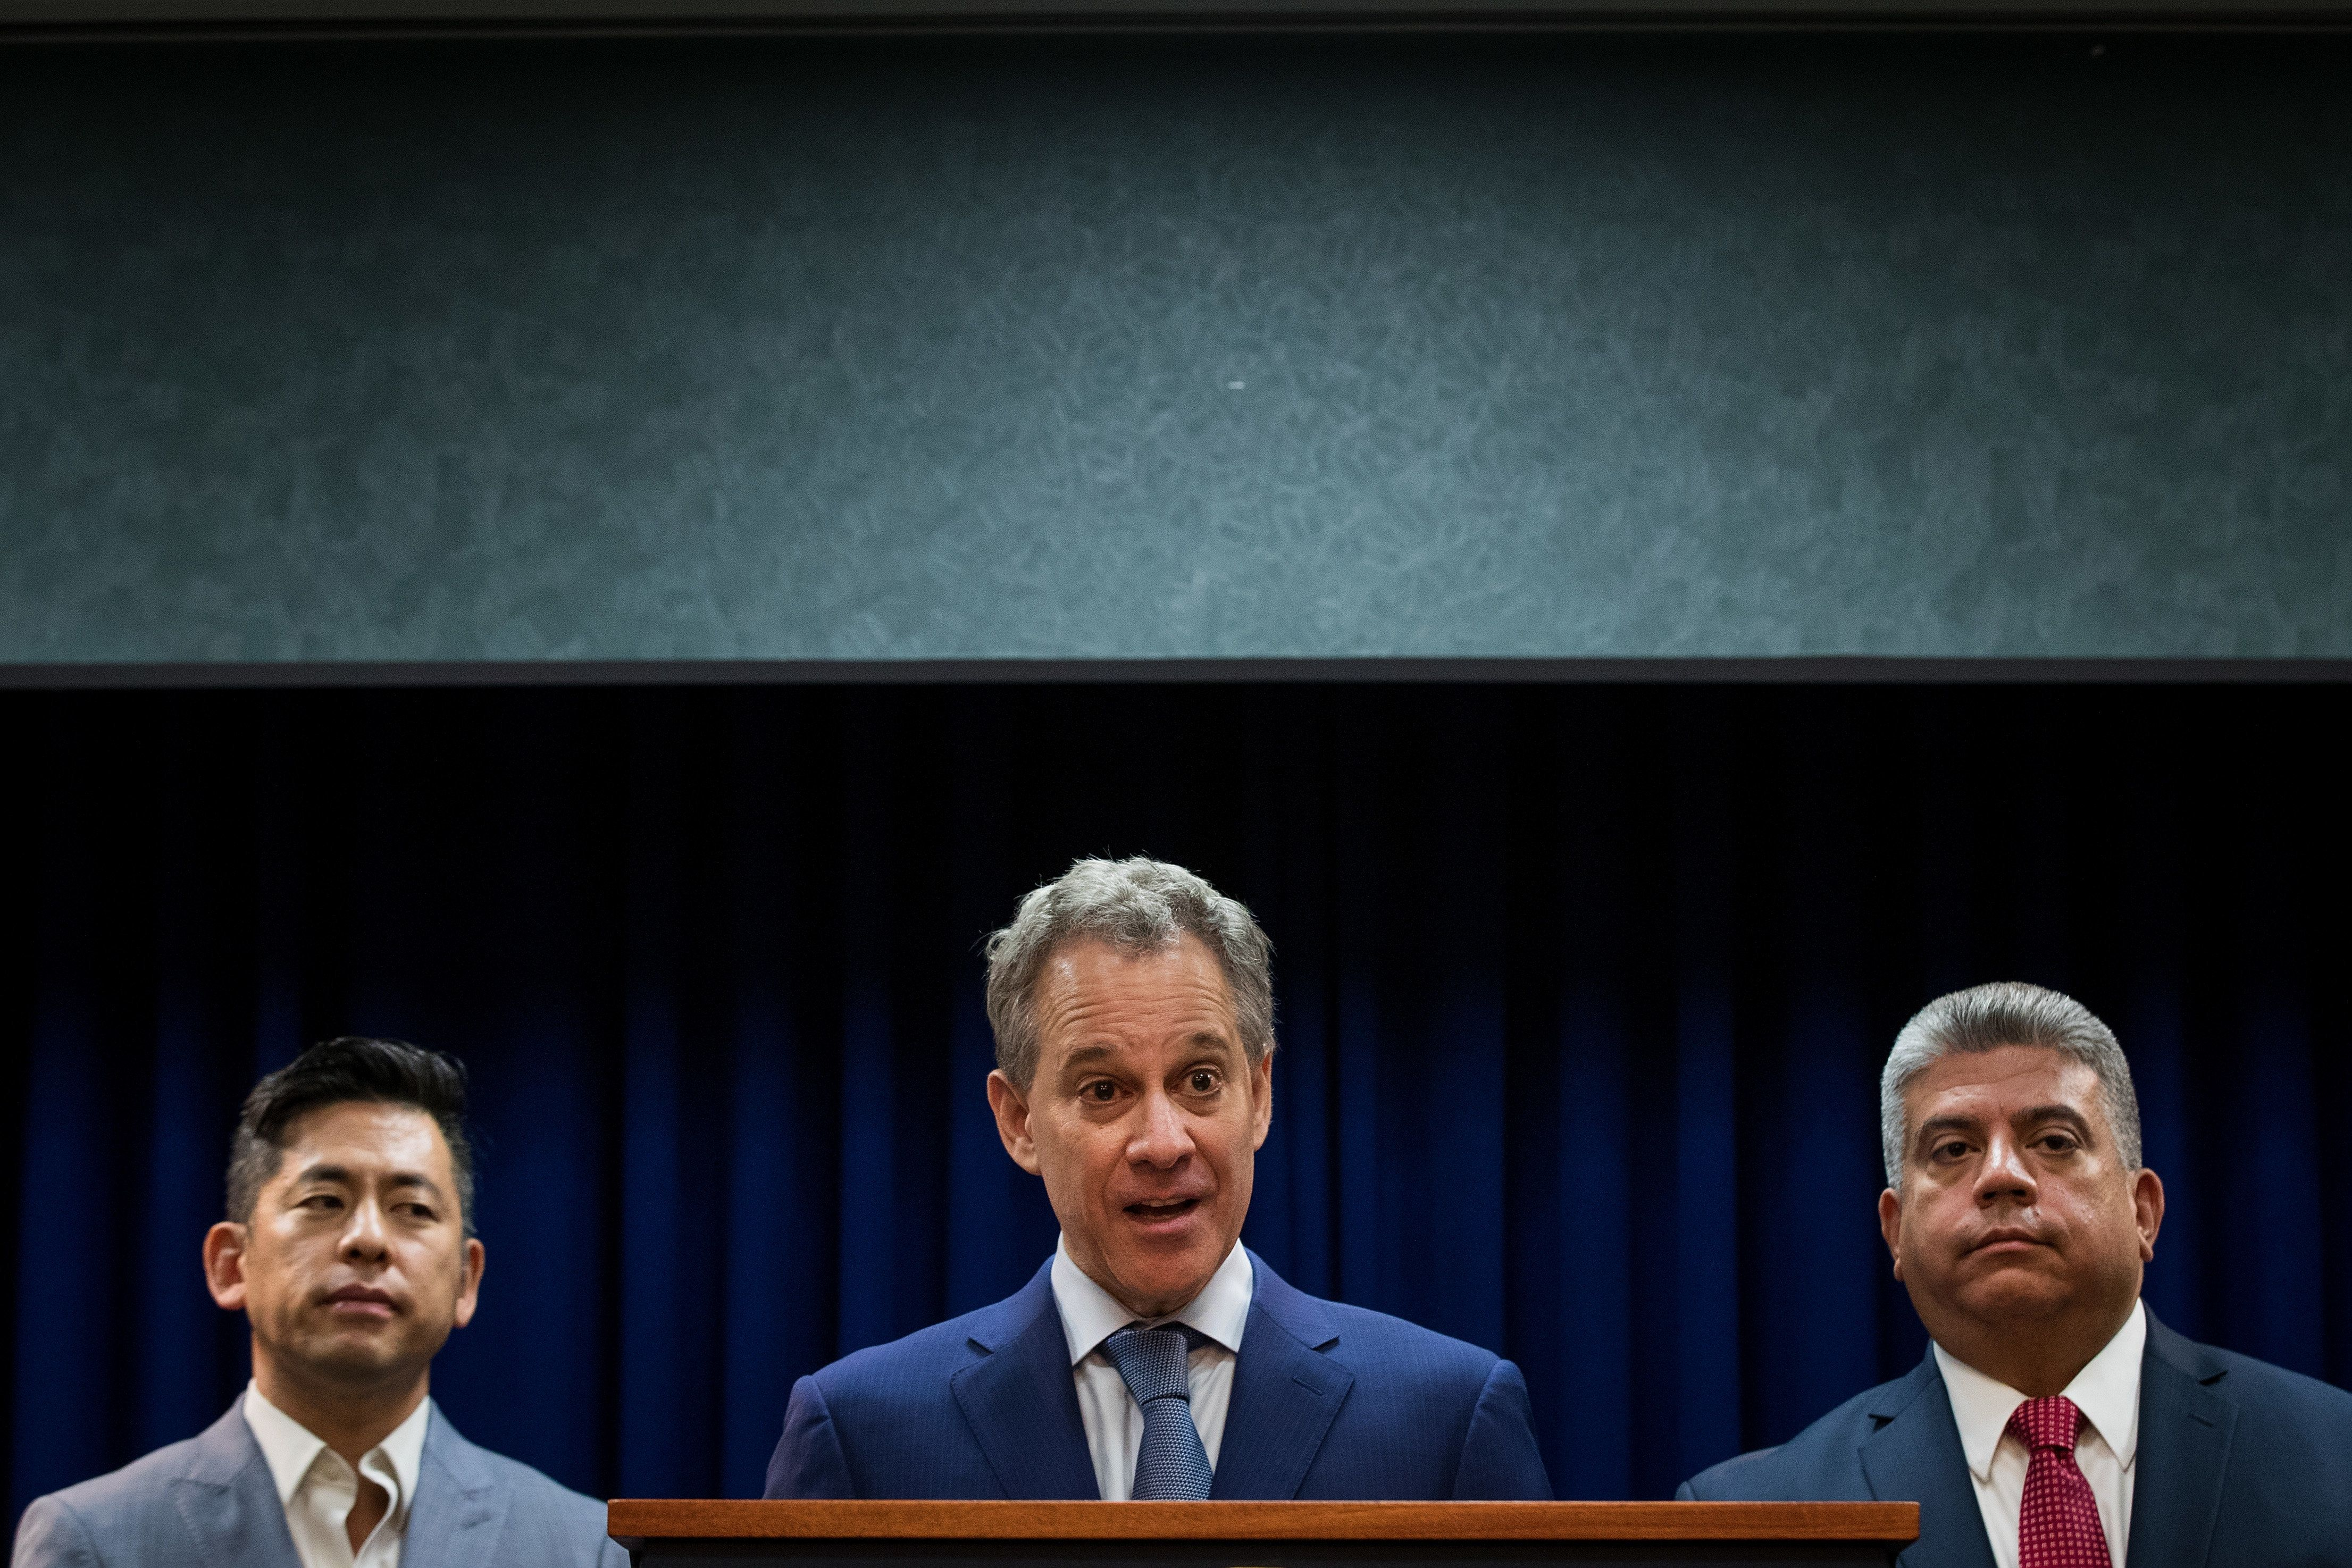 NY Attorney General Eric Schneiderman resigns amid abuse allegations.